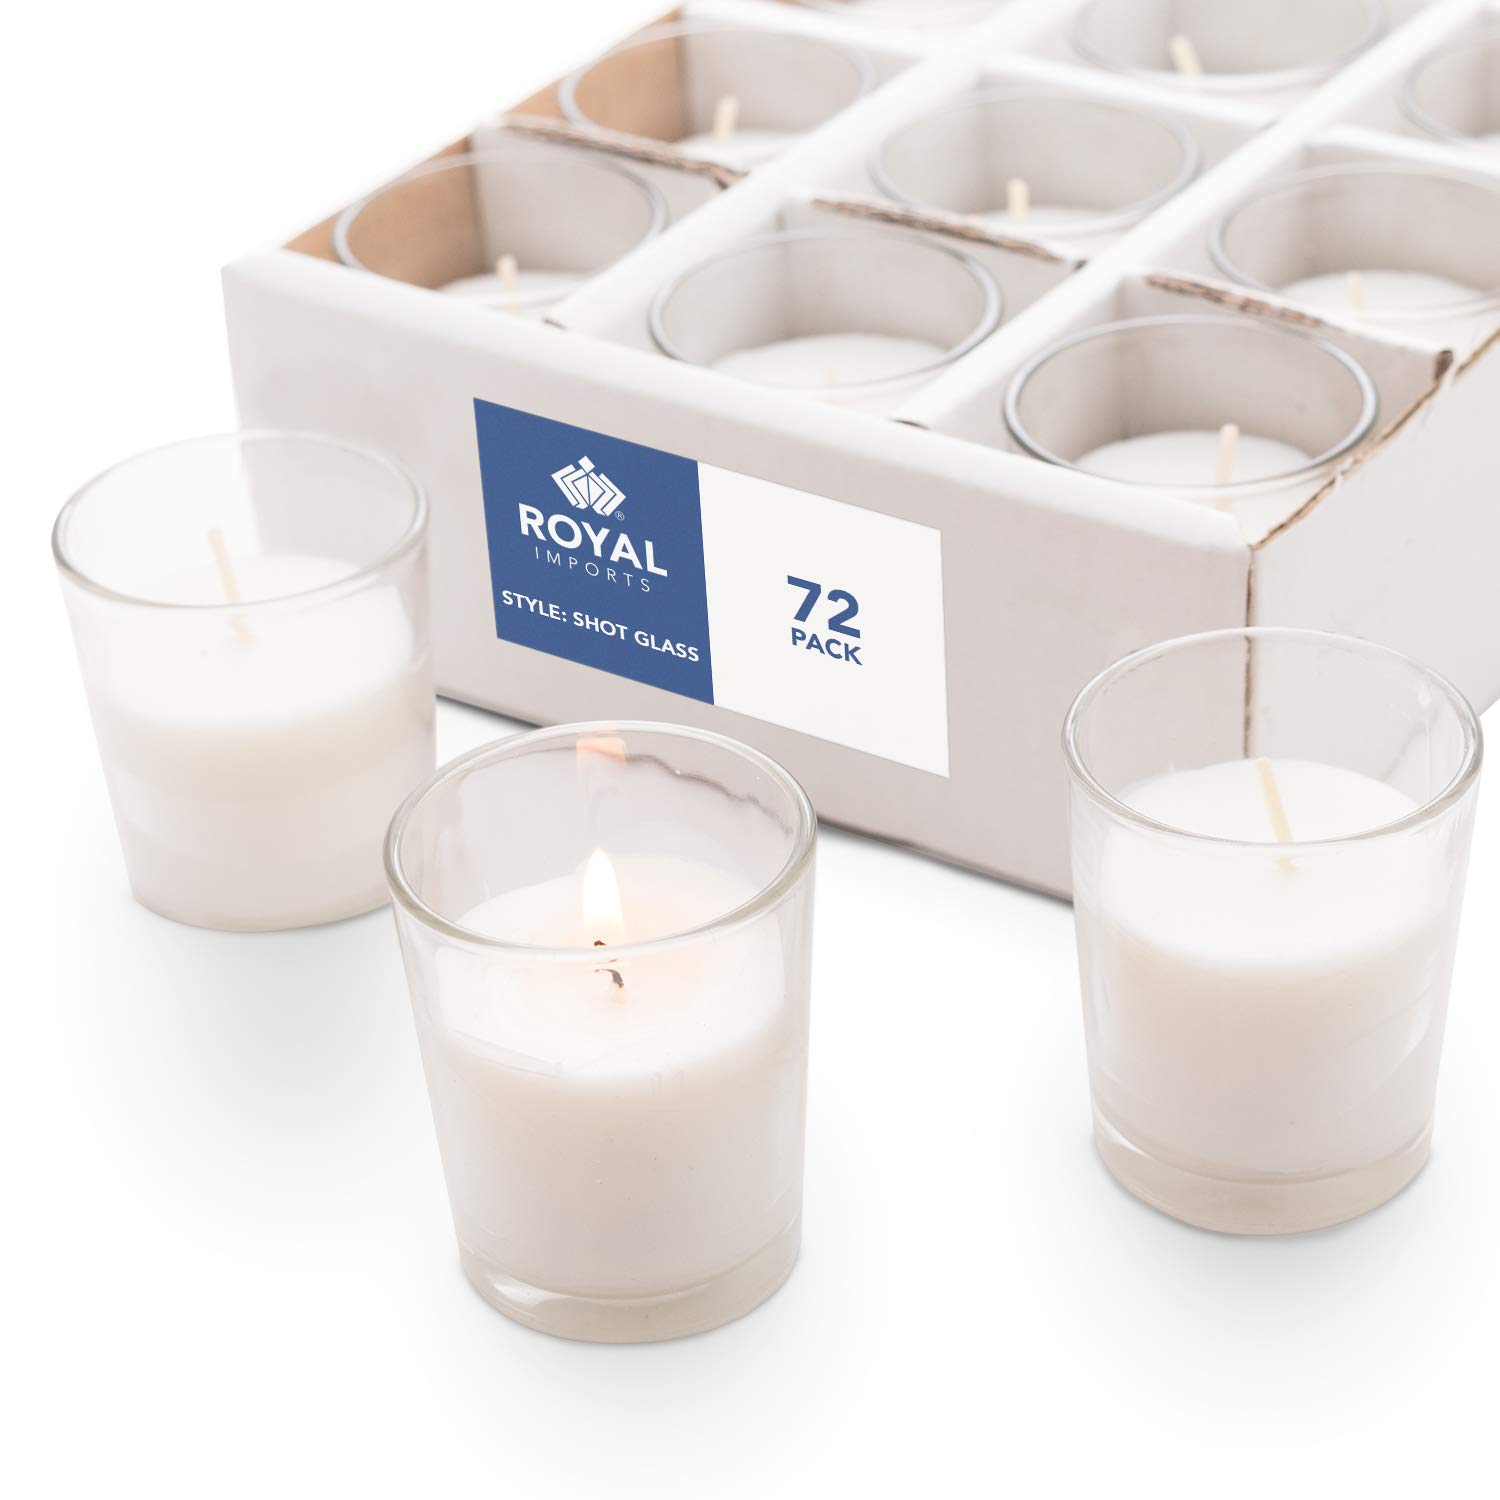 Royal Imports Votive Candles Bulk Set of 72 with White Candles Wax Filled in Clear Glass Holders, Unscented, Ideal for Restaurant, Weddings, Party, Spa, Holiday, Home Decor - 15 Hour Burn Time